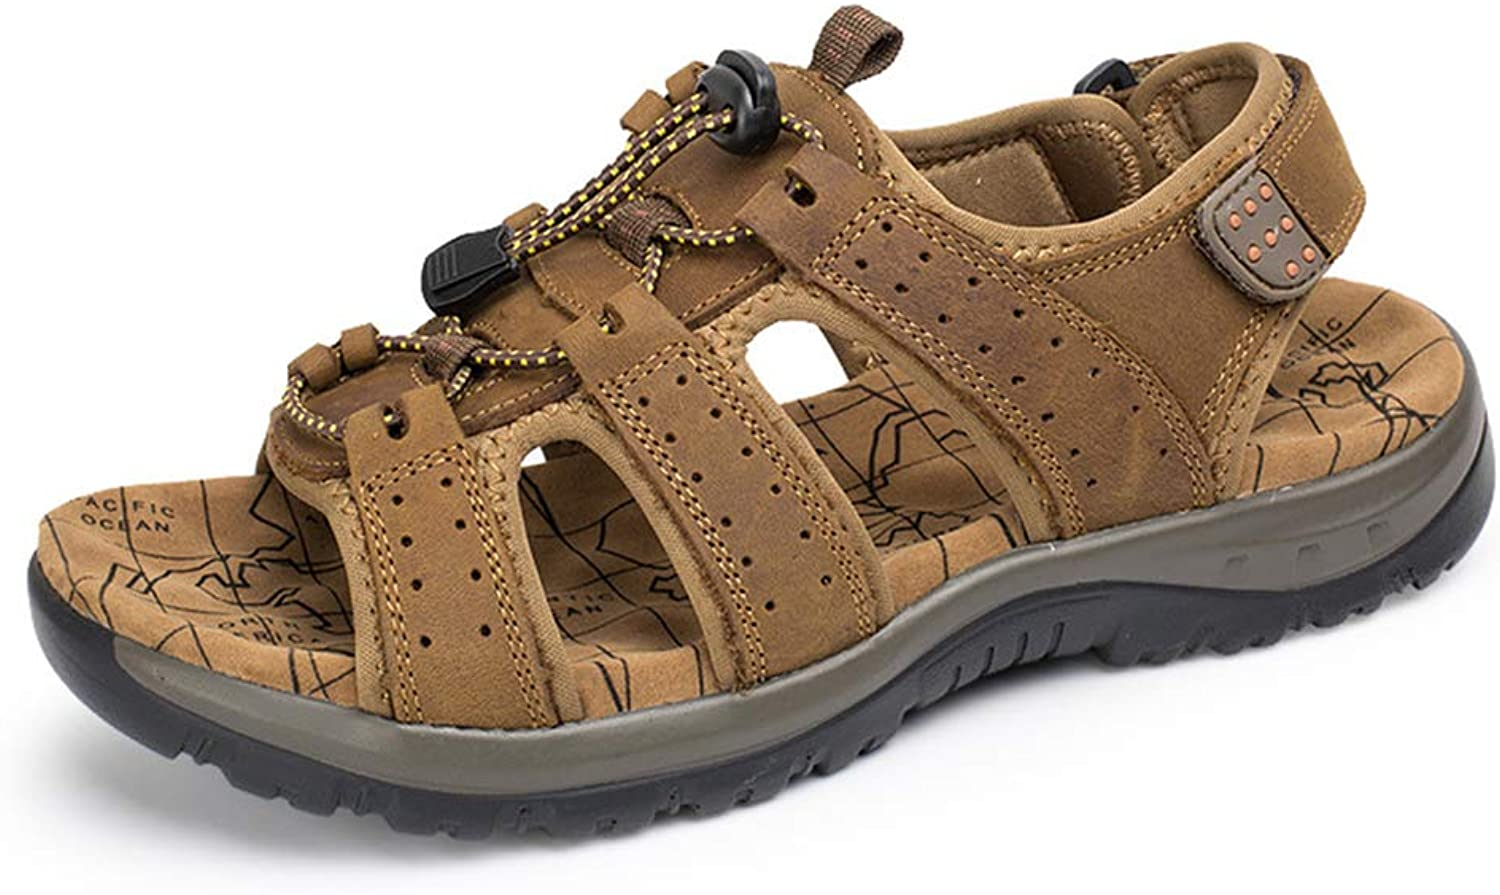 Summer Open Toe Casual Beach Sandals Hiking Non Slip Outdoor Hiking Comfy Lightweight Leather Lace-Up shoes